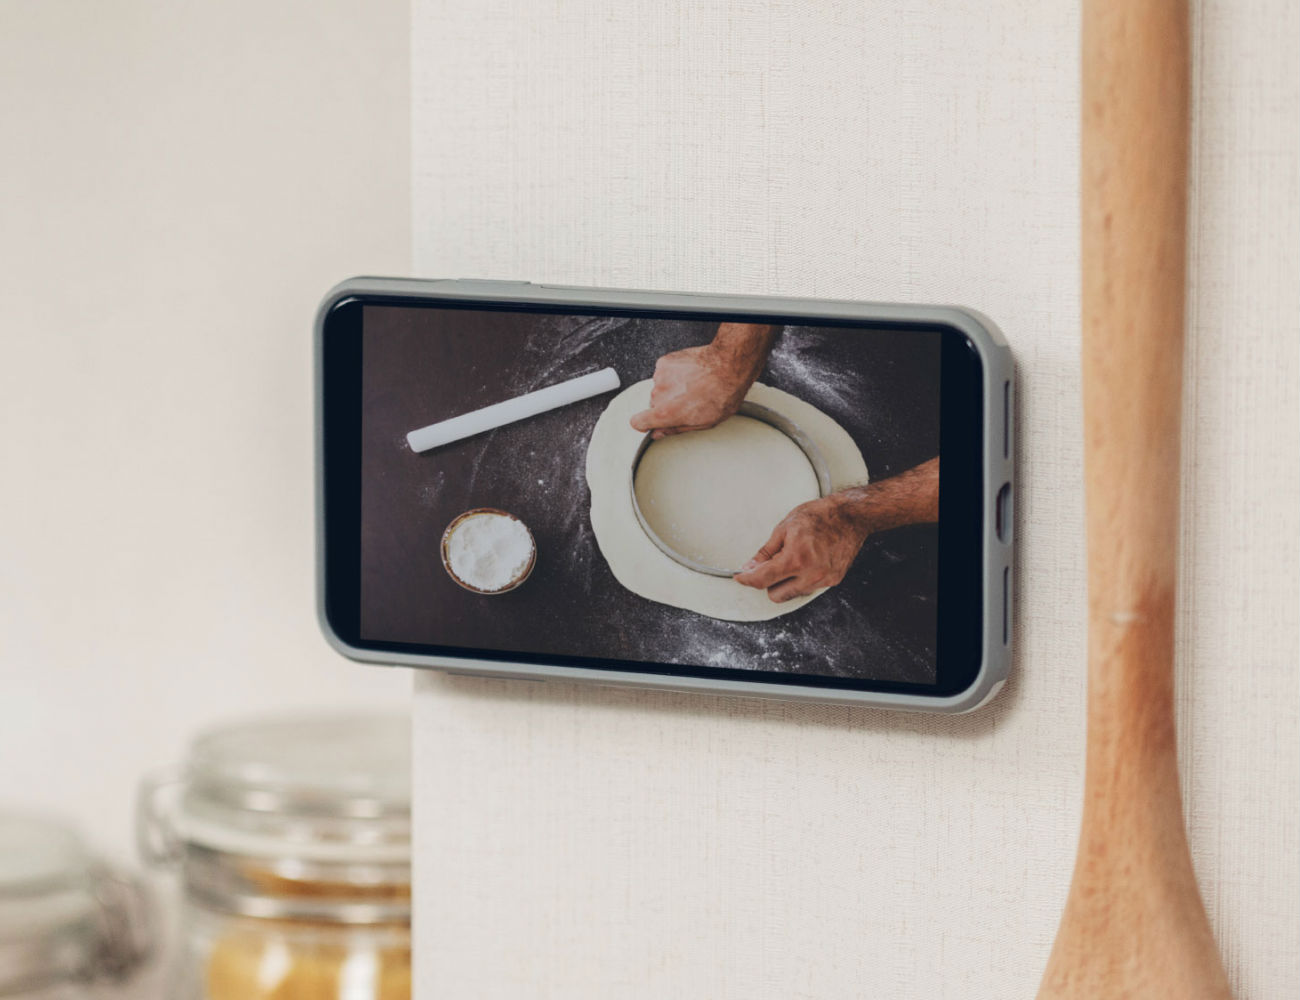 15 Useful gadgets to make your day a little easier